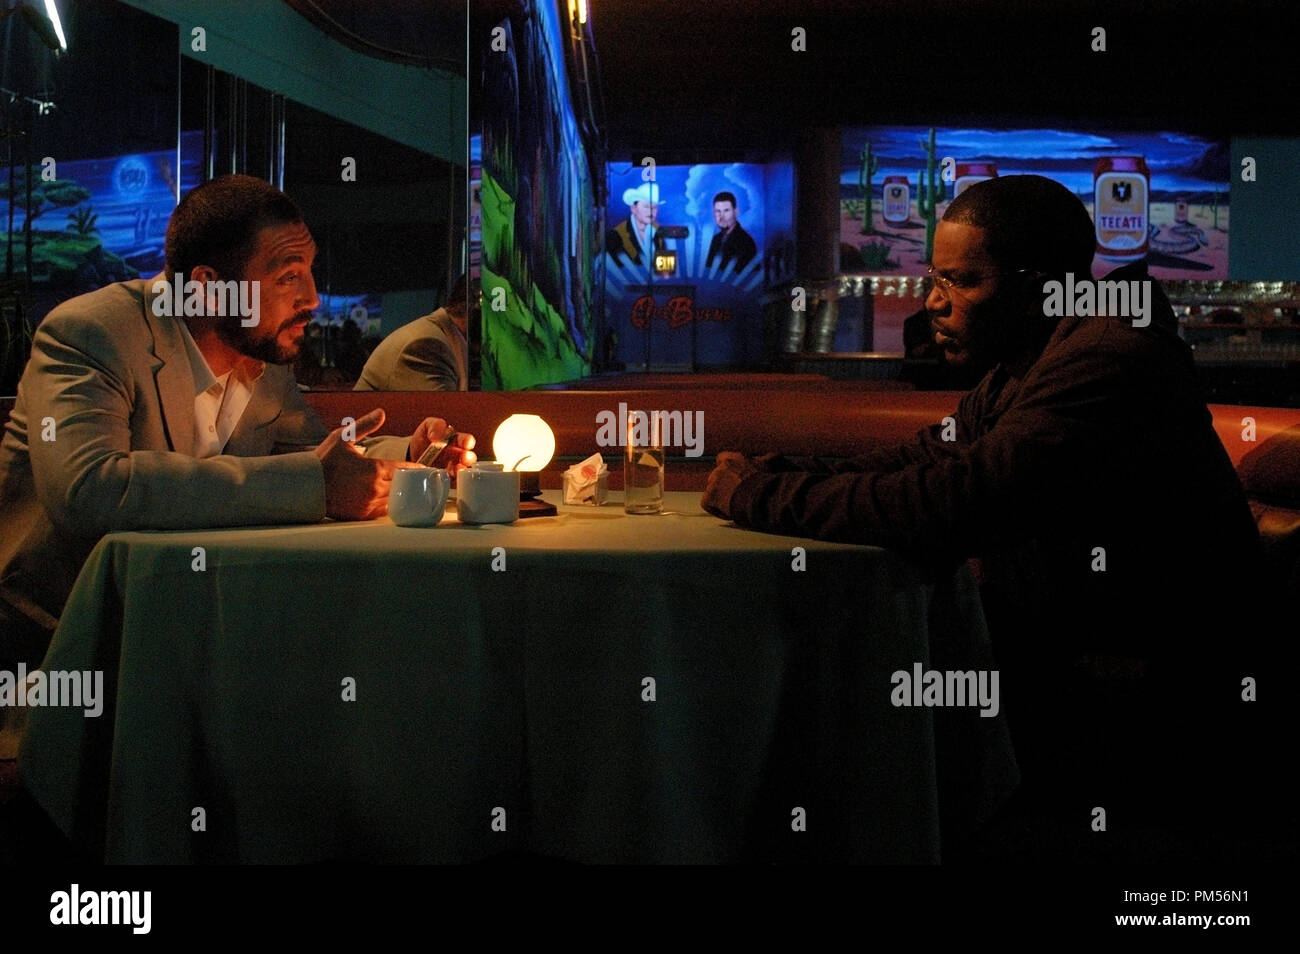 Collateral Movie Still Stock Photos & Collateral Movie